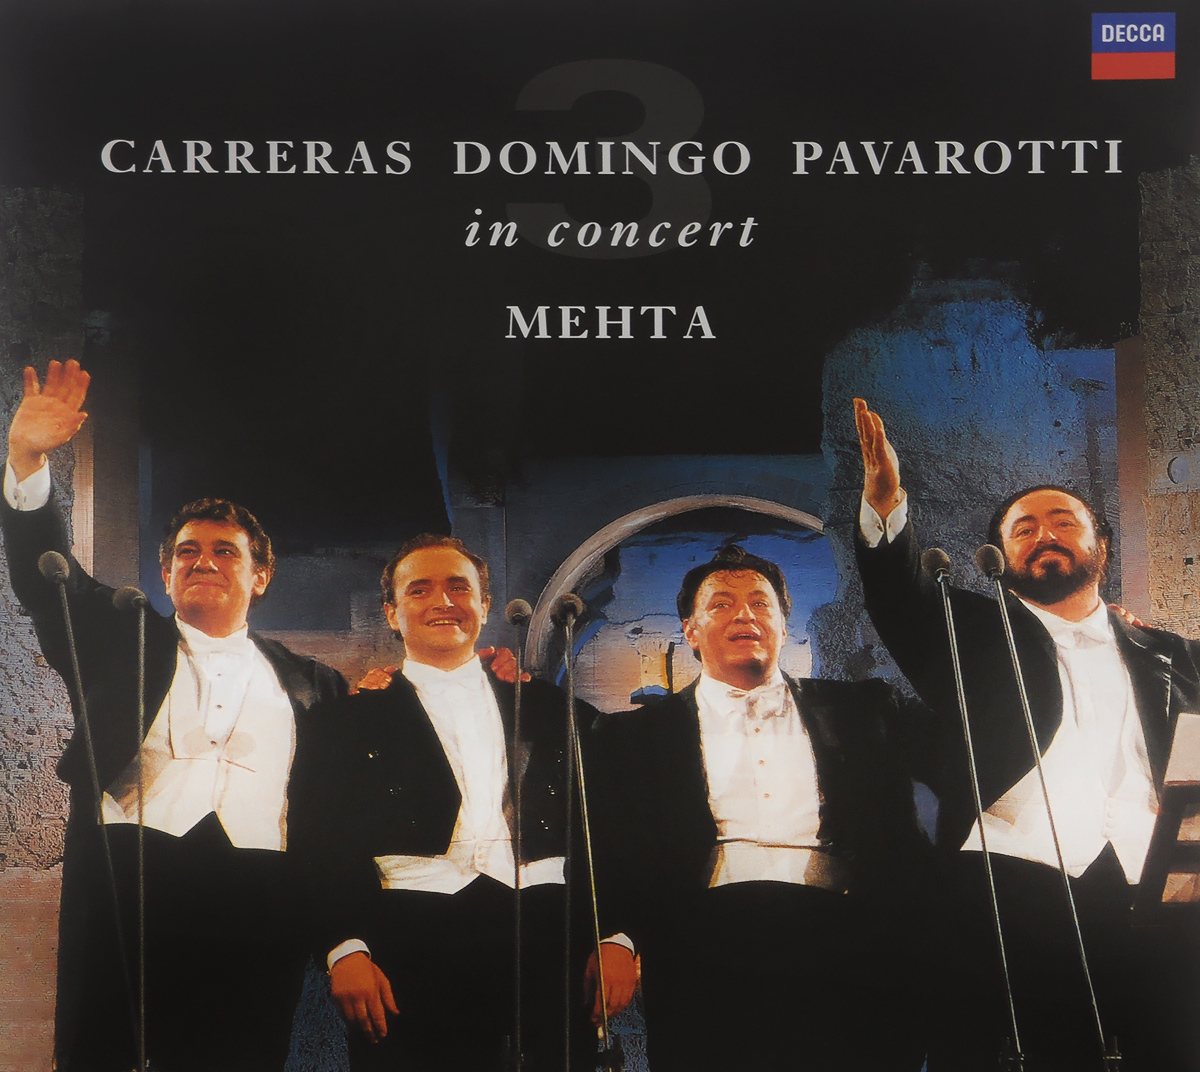 Orchestra Del Maggio Musicale Fiorentino,Orchestra E Coro Del Teatro Dell'Opera Di Roma Carreras. Domingo. Pavarotti. Mehta. Three Tenors. 25th Anniversary Edition (LP) sahoo 45545 outdoor cycling polyester arm sleeves white green pair xxl